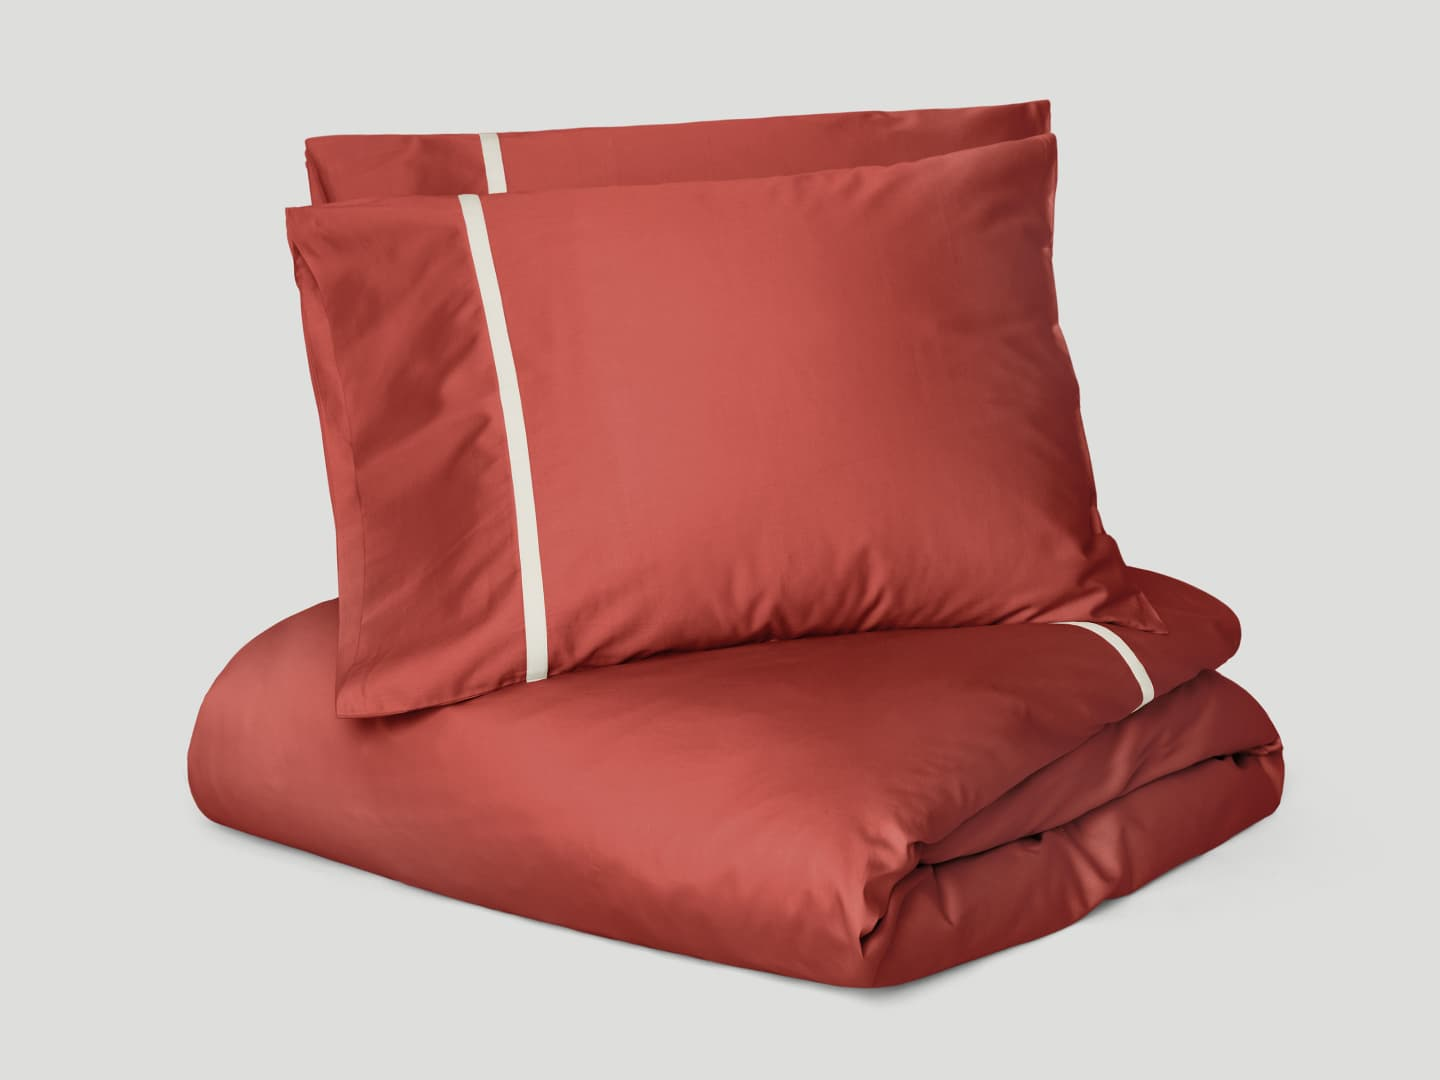 Duvet Cover Gatt - Indian Red